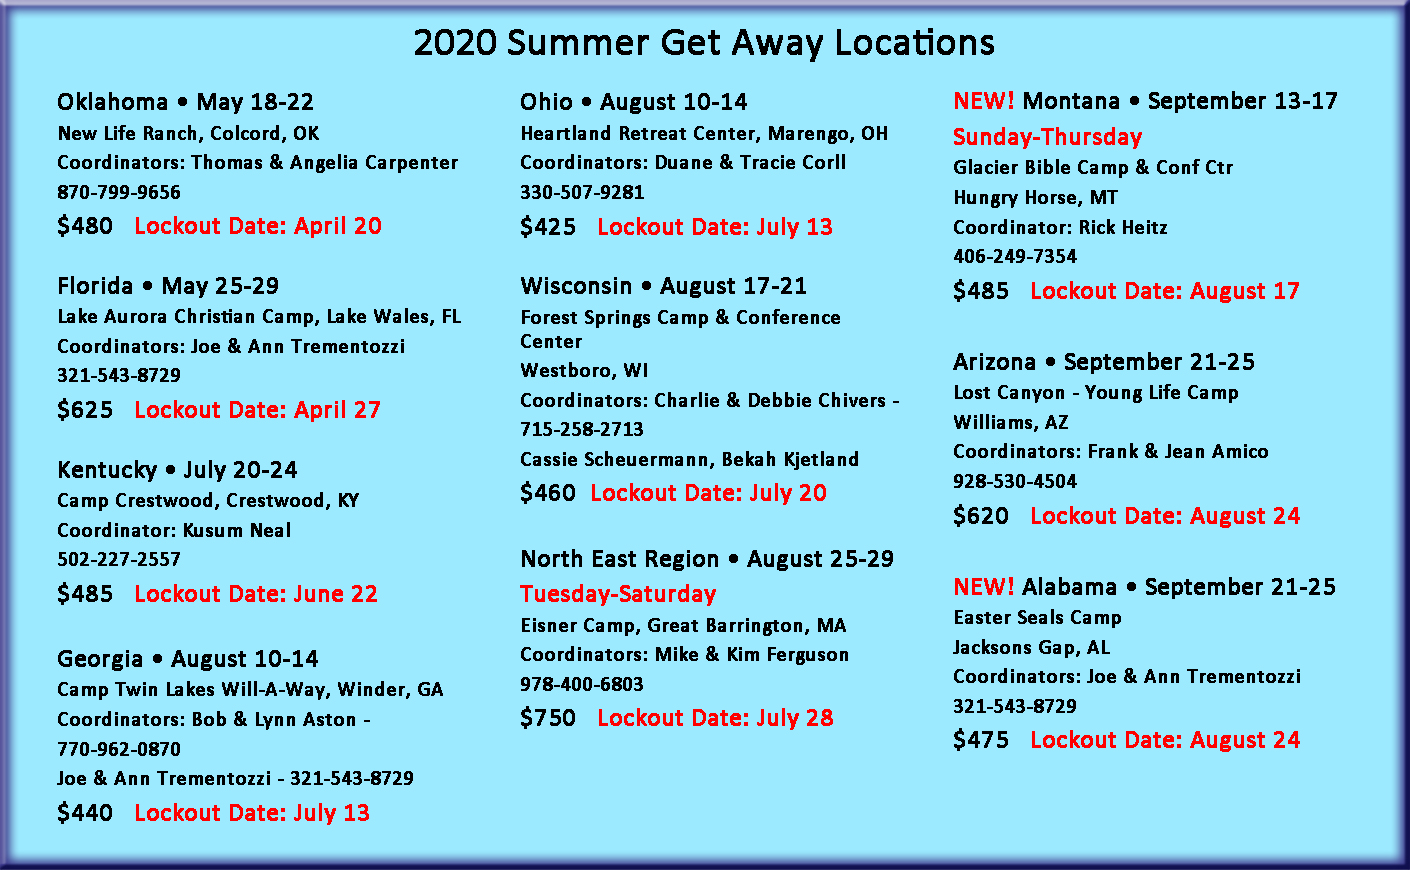 2020 Summer Get Away Dates and Locations